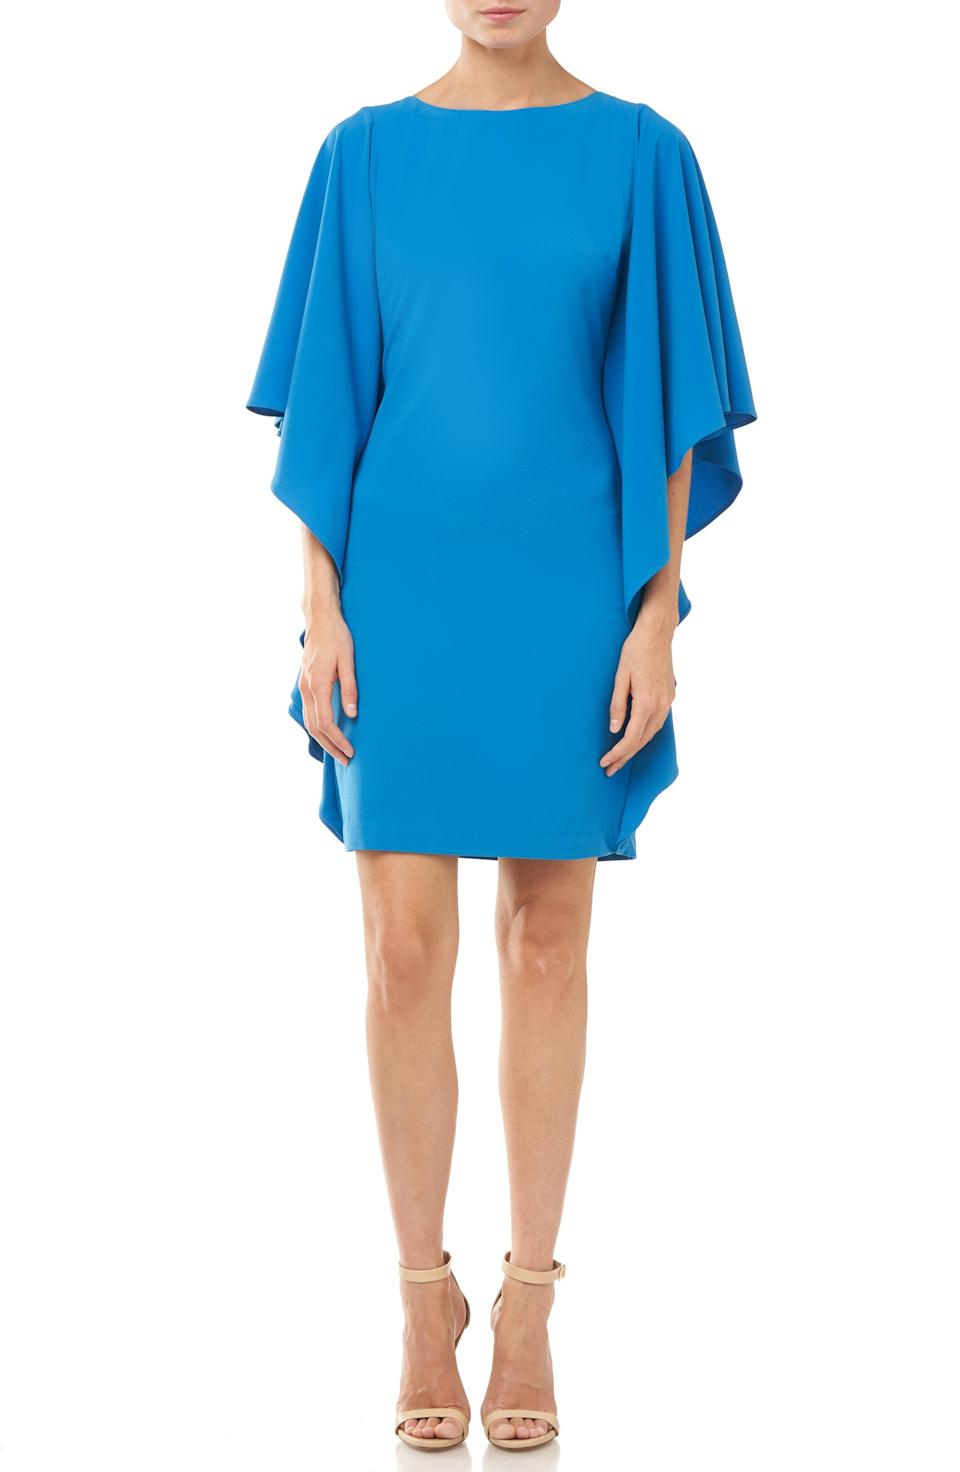 """<p><strong>HALSTON HERITAGE</strong></p><p>nordstrom.com</p><p><a href=""""https://go.redirectingat.com?id=74968X1596630&url=https%3A%2F%2Fwww.nordstrom.com%2Fs%2Fhalston-heritage-ruffle-sleeve-minidress%2F5709636&sref=https%3A%2F%2Fwww.townandcountrymag.com%2Fstyle%2Ffashion-trends%2Fg36557314%2Fnordstrom-half-yearly-sale-may-2021%2F"""" rel=""""nofollow noopener"""" target=""""_blank"""" data-ylk=""""slk:Shop Now"""" class=""""link rapid-noclick-resp"""">Shop Now</a></p><p>$67.60</p><p><em>Original Price: $169</em></p>"""